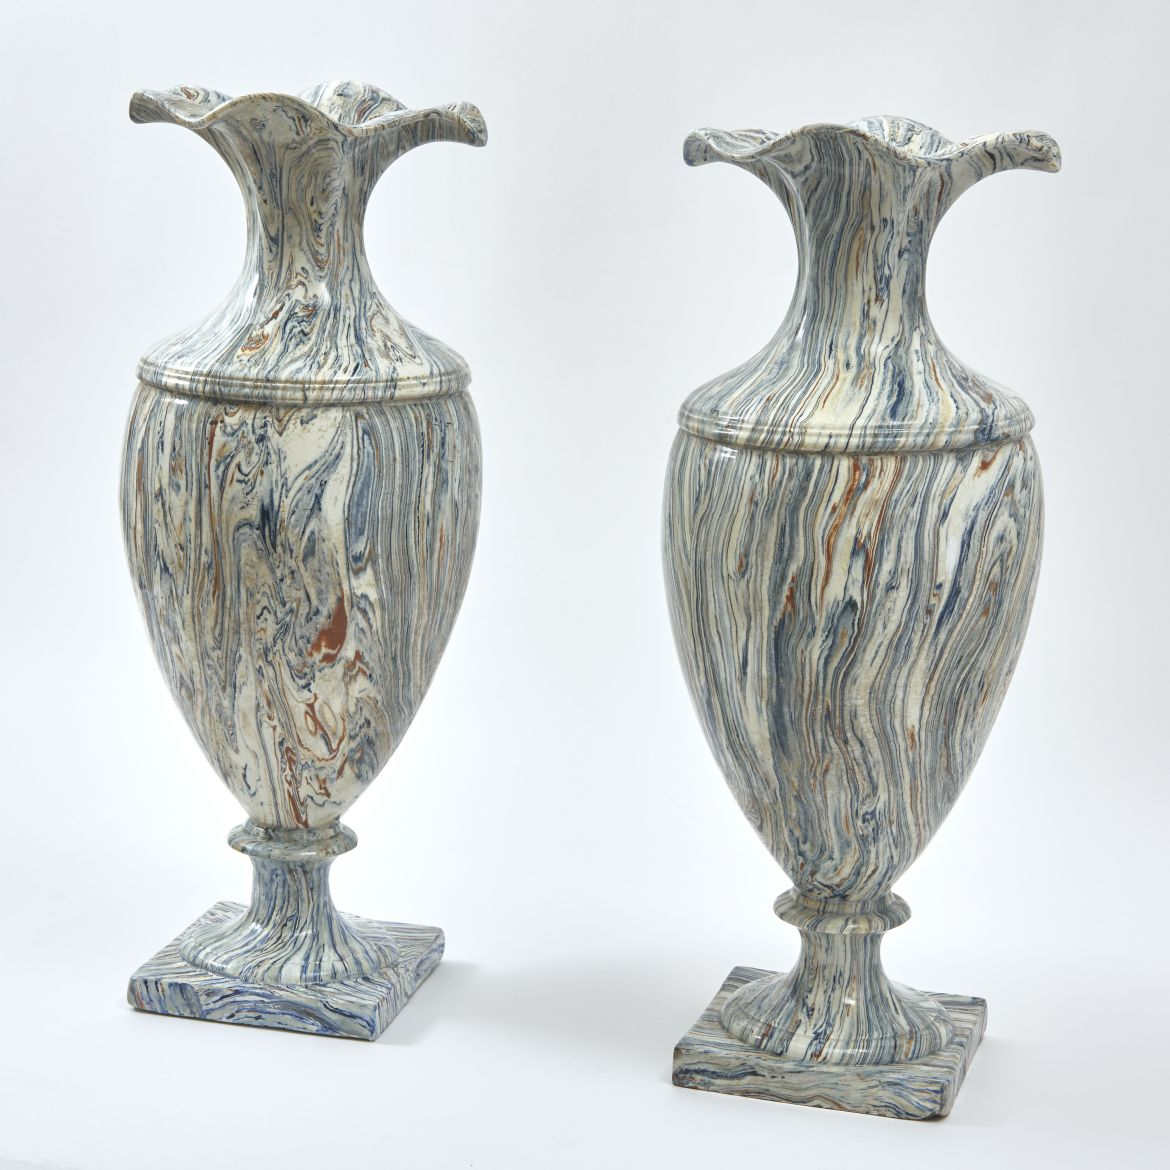 French Sarreguemines Agateware Vases